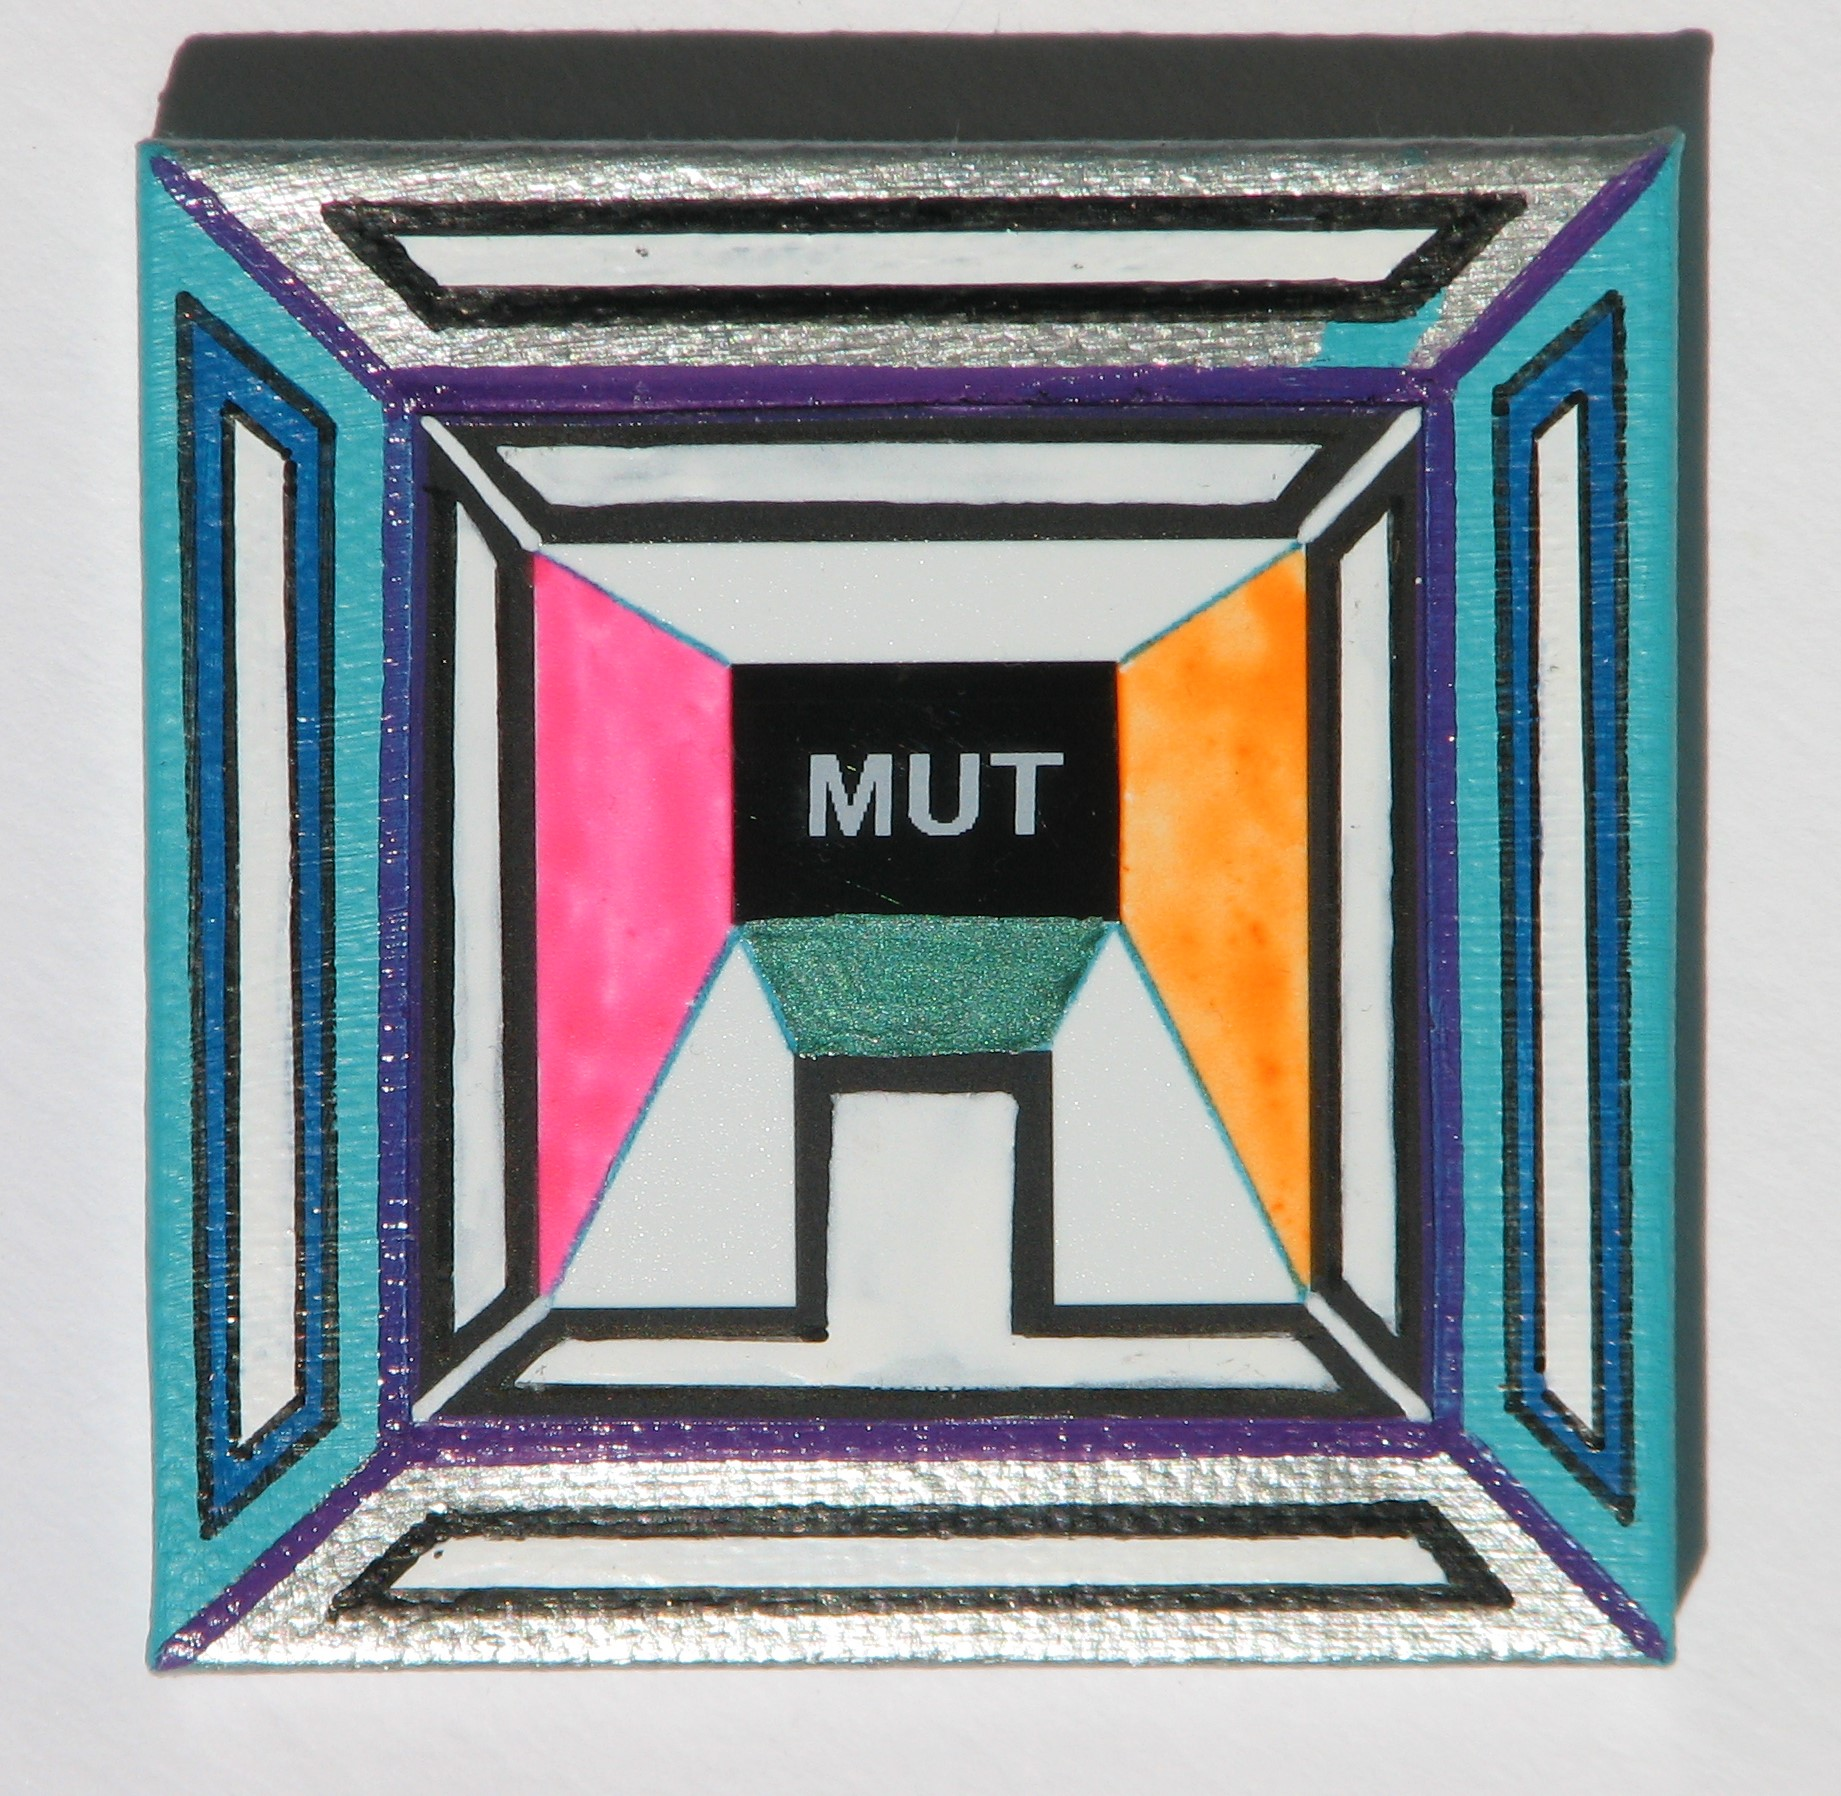 Mut  2016  Mixed Media  7 cm x 7 cm